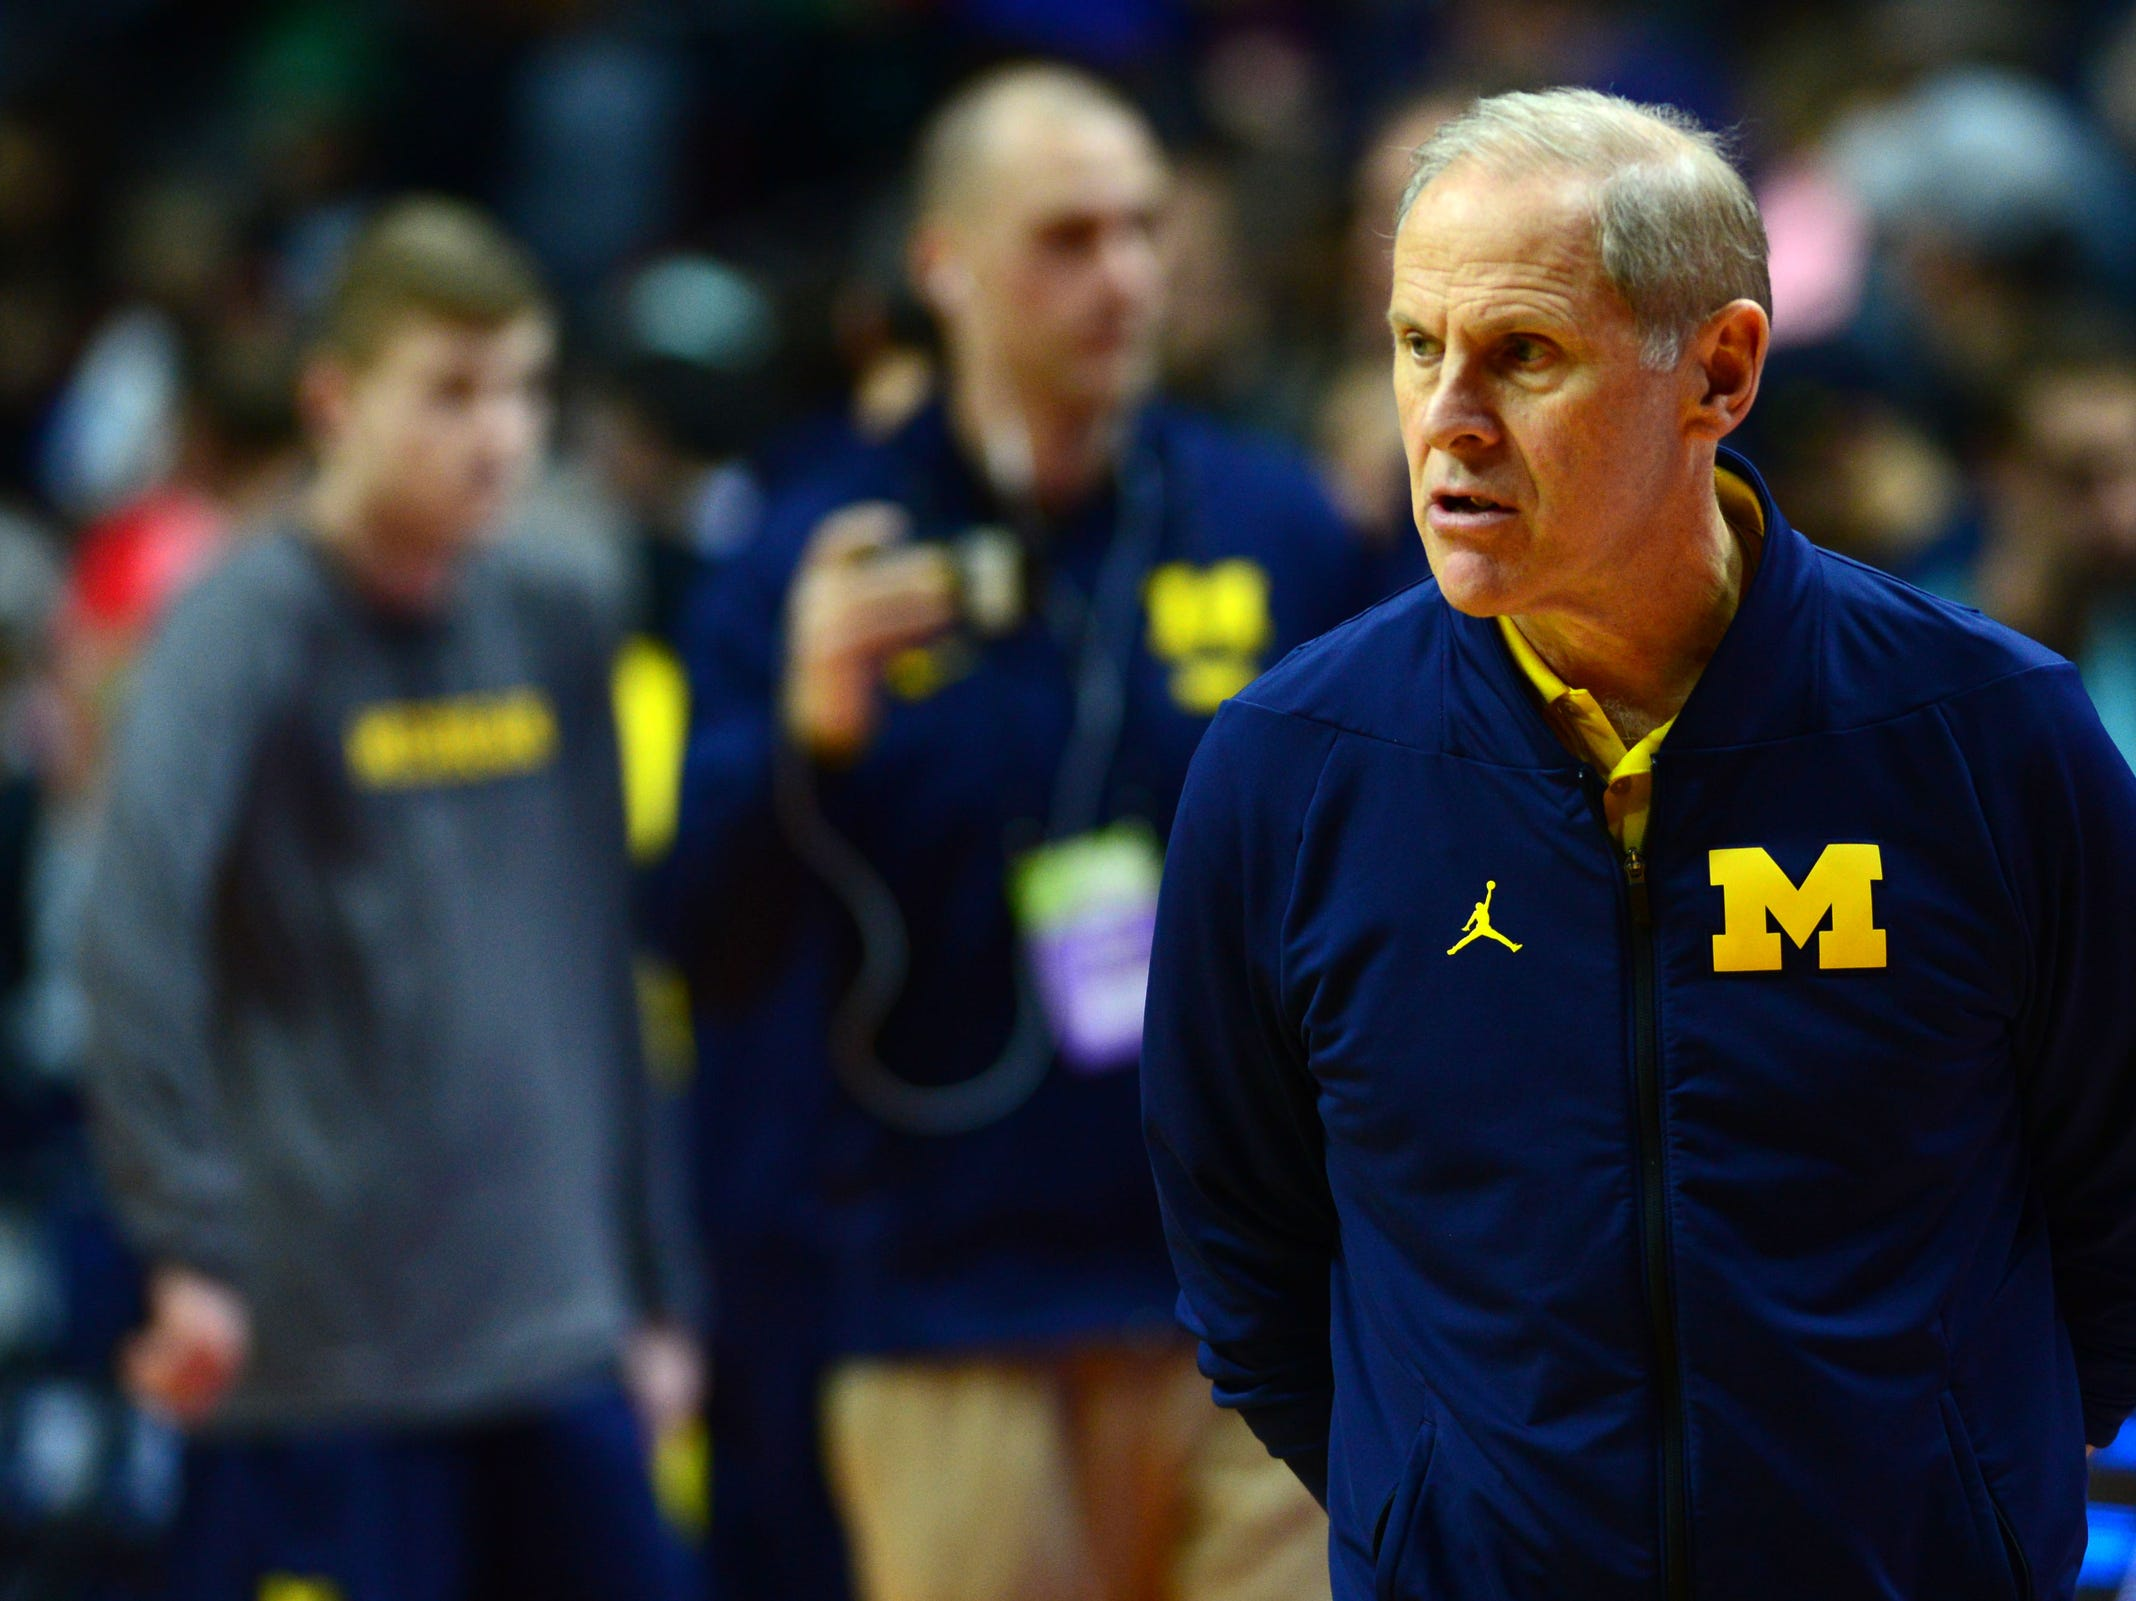 Mar 20, 2019; Des Moines, IA, USA; Michigan Wolverines head coach John Beilein during practice before the first round of the 2019 NCAA Tournament at Wells Fargo Arena. Mandatory Credit: Jeffrey Becker-USA TODAY Sports